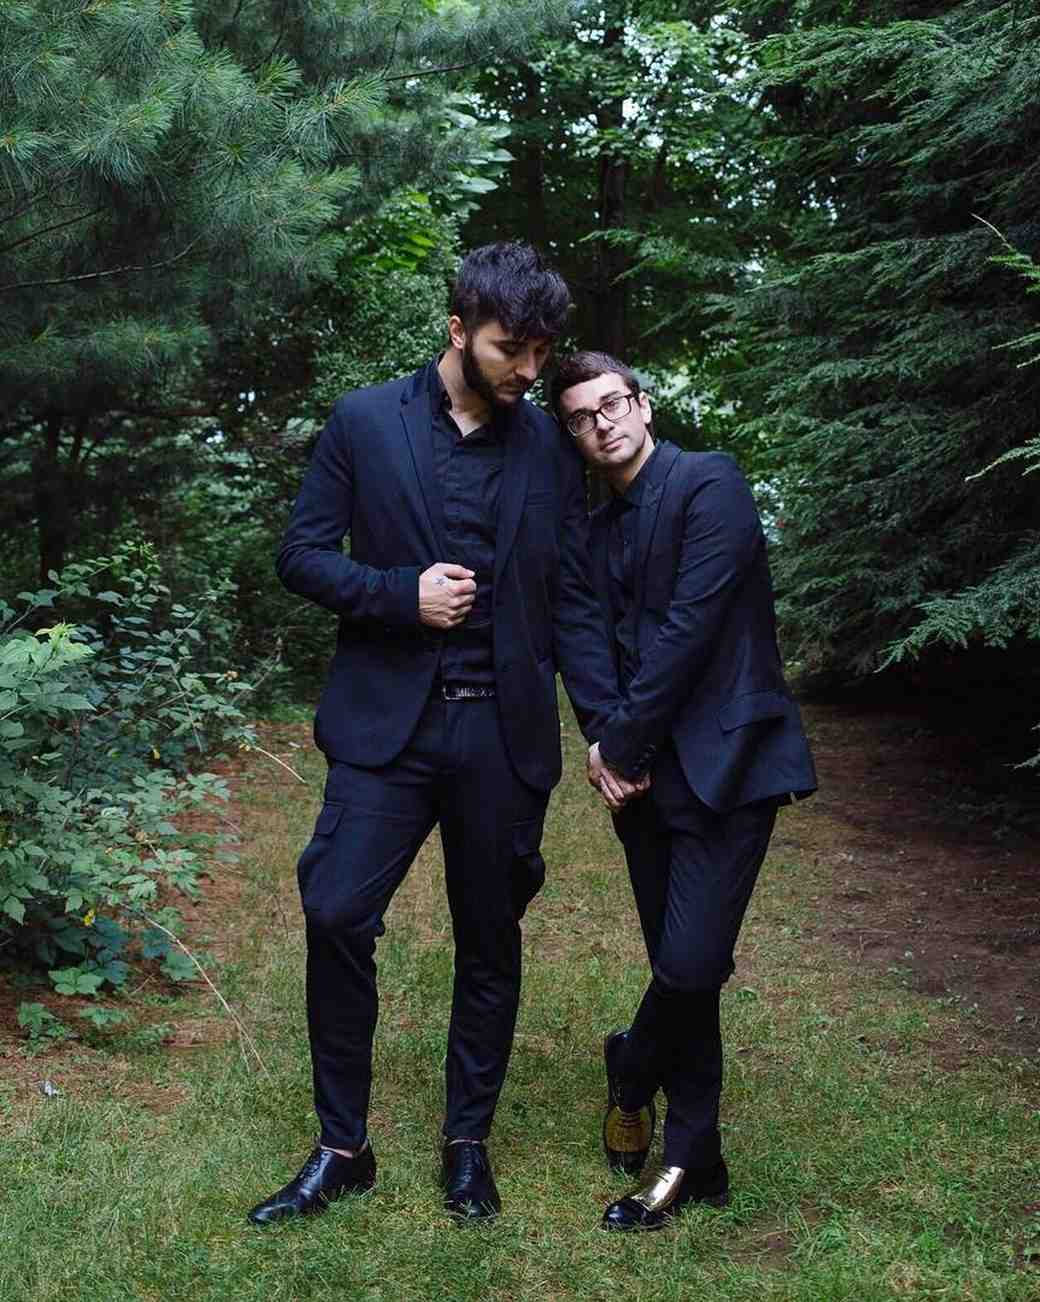 Fashion designer Christian Siriano and his husband, singer Brad Walsh, on their wedding day, in matching black suits.